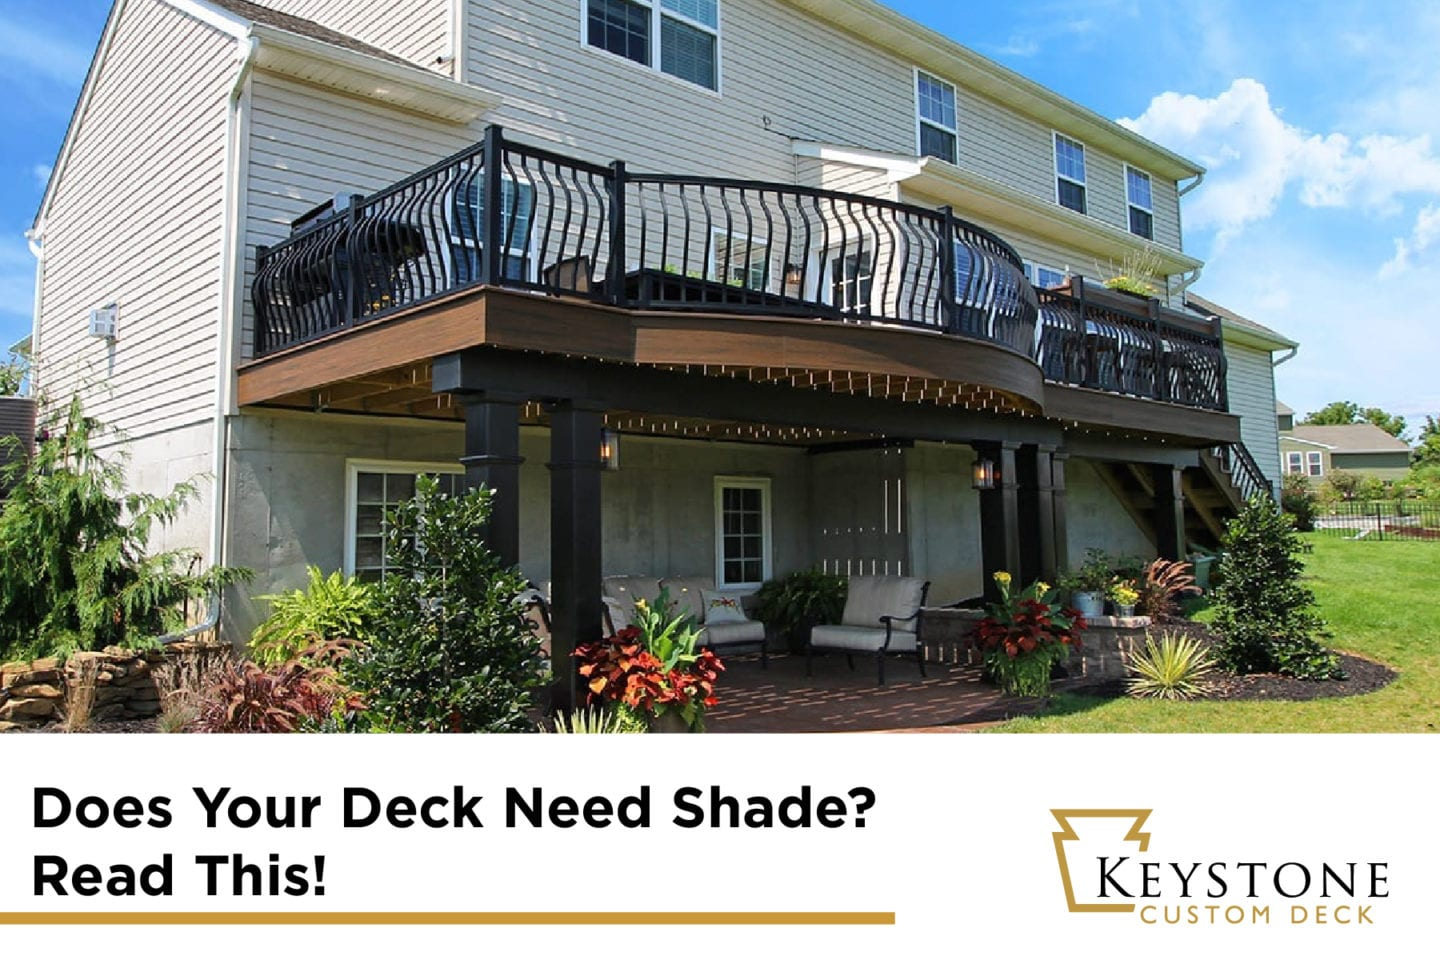 Does Your Deck Need Shade? Read This! 1